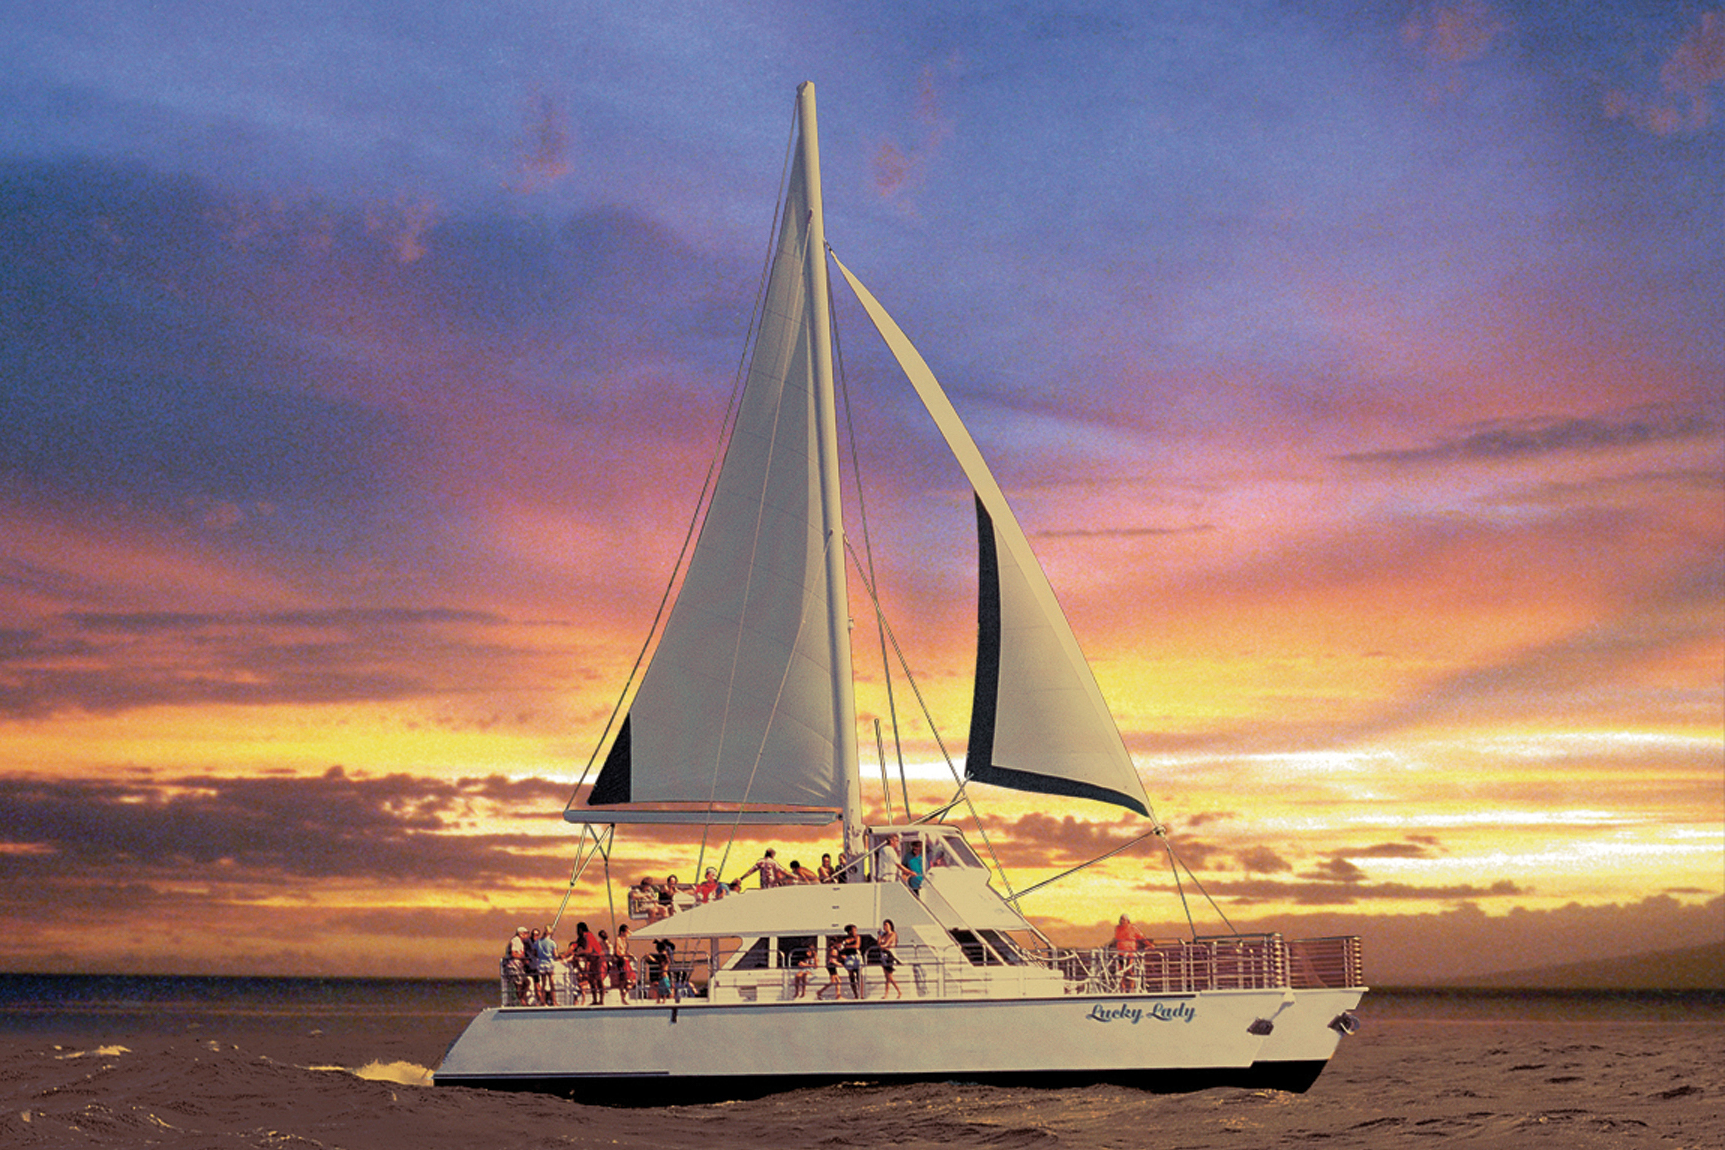 DINNER CRUISE - Kauai's Na Pali Coast is truly a must-see on your Kauai vacation. Come aboard a catamaran and combine sightseeing with a delicious dinner while the sun sets on the horizon. Or alternatively, go snorkeling first and then enjoy a dinner cruise.Blue Dolphin Charters - Na Pali Sunset Dinner CruiseHolo Holo Charters - Napali Sunset Sail